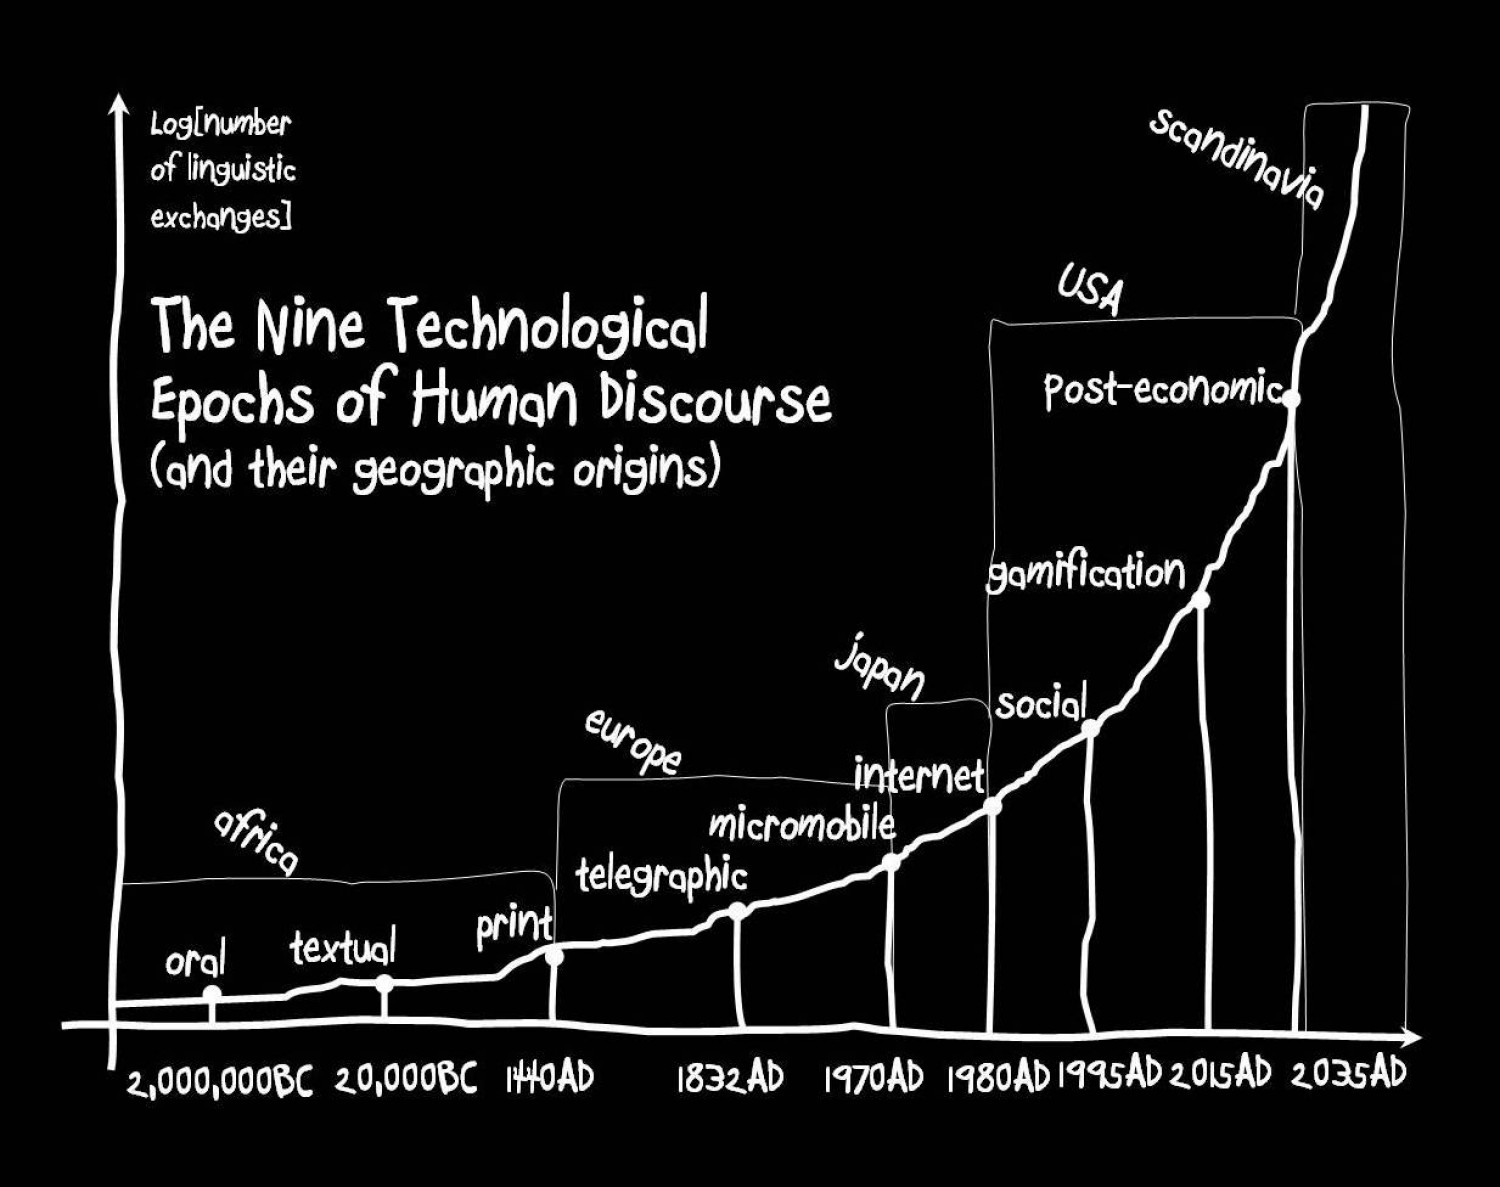 The Nine Technological Epochs of Human Discourse Infographic